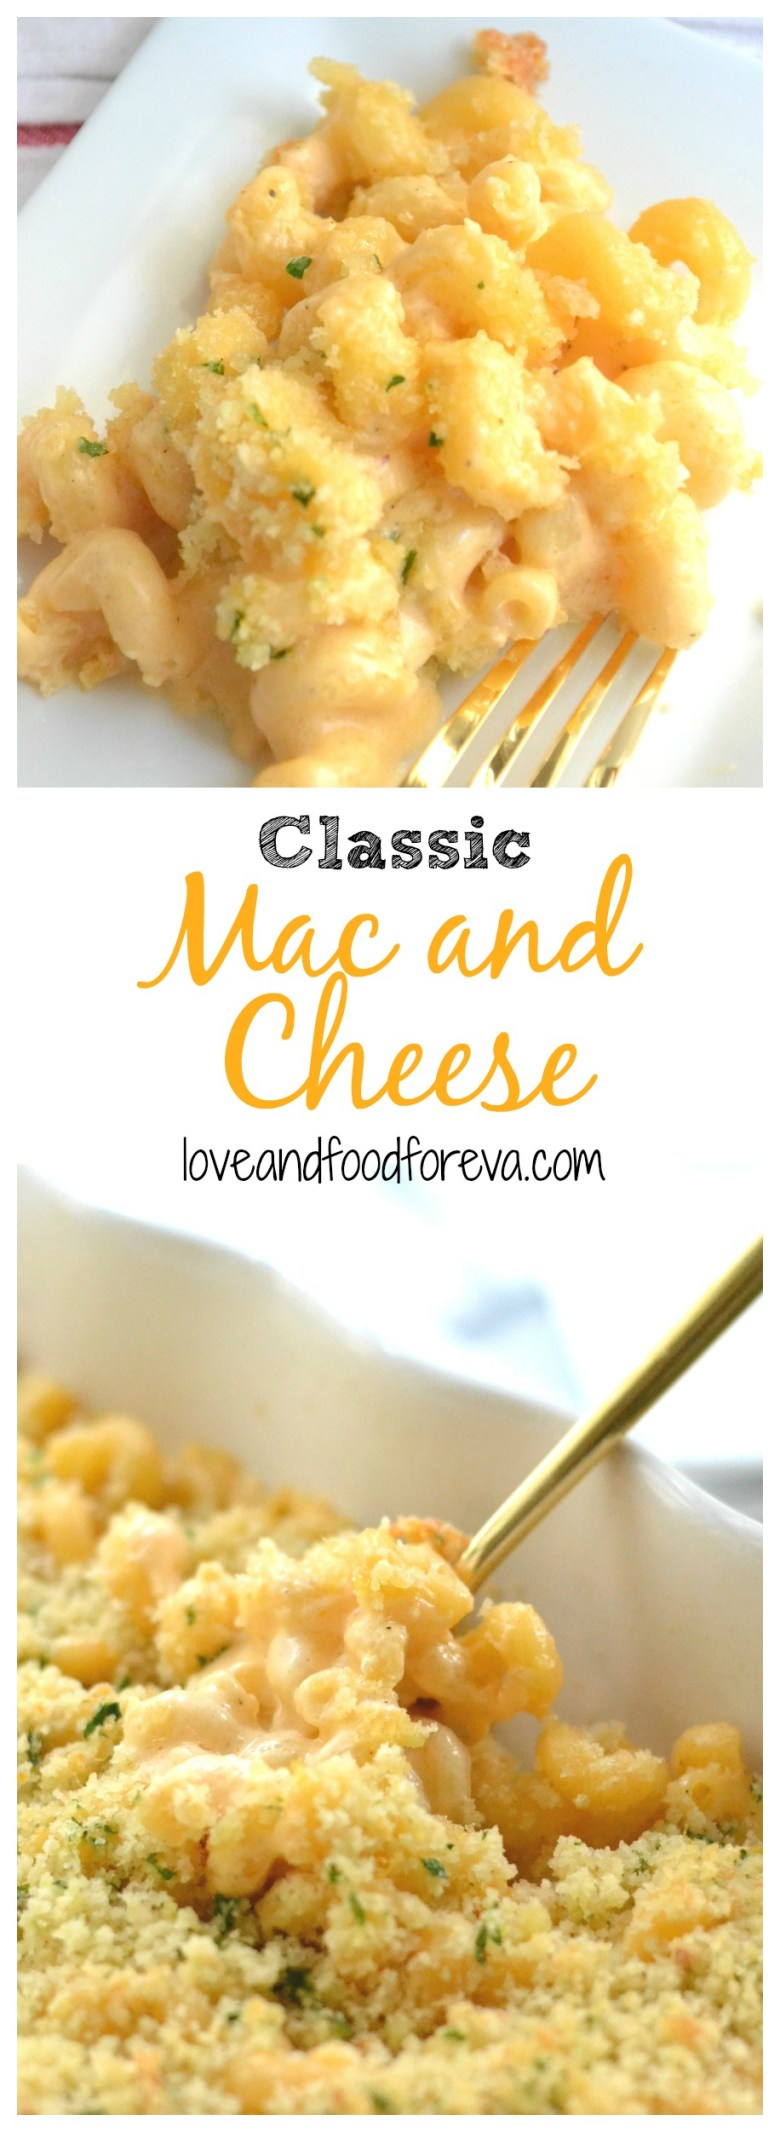 Classic Mac and Cheese with Panko Crumb Topping: creamy and gooey with a crunch!